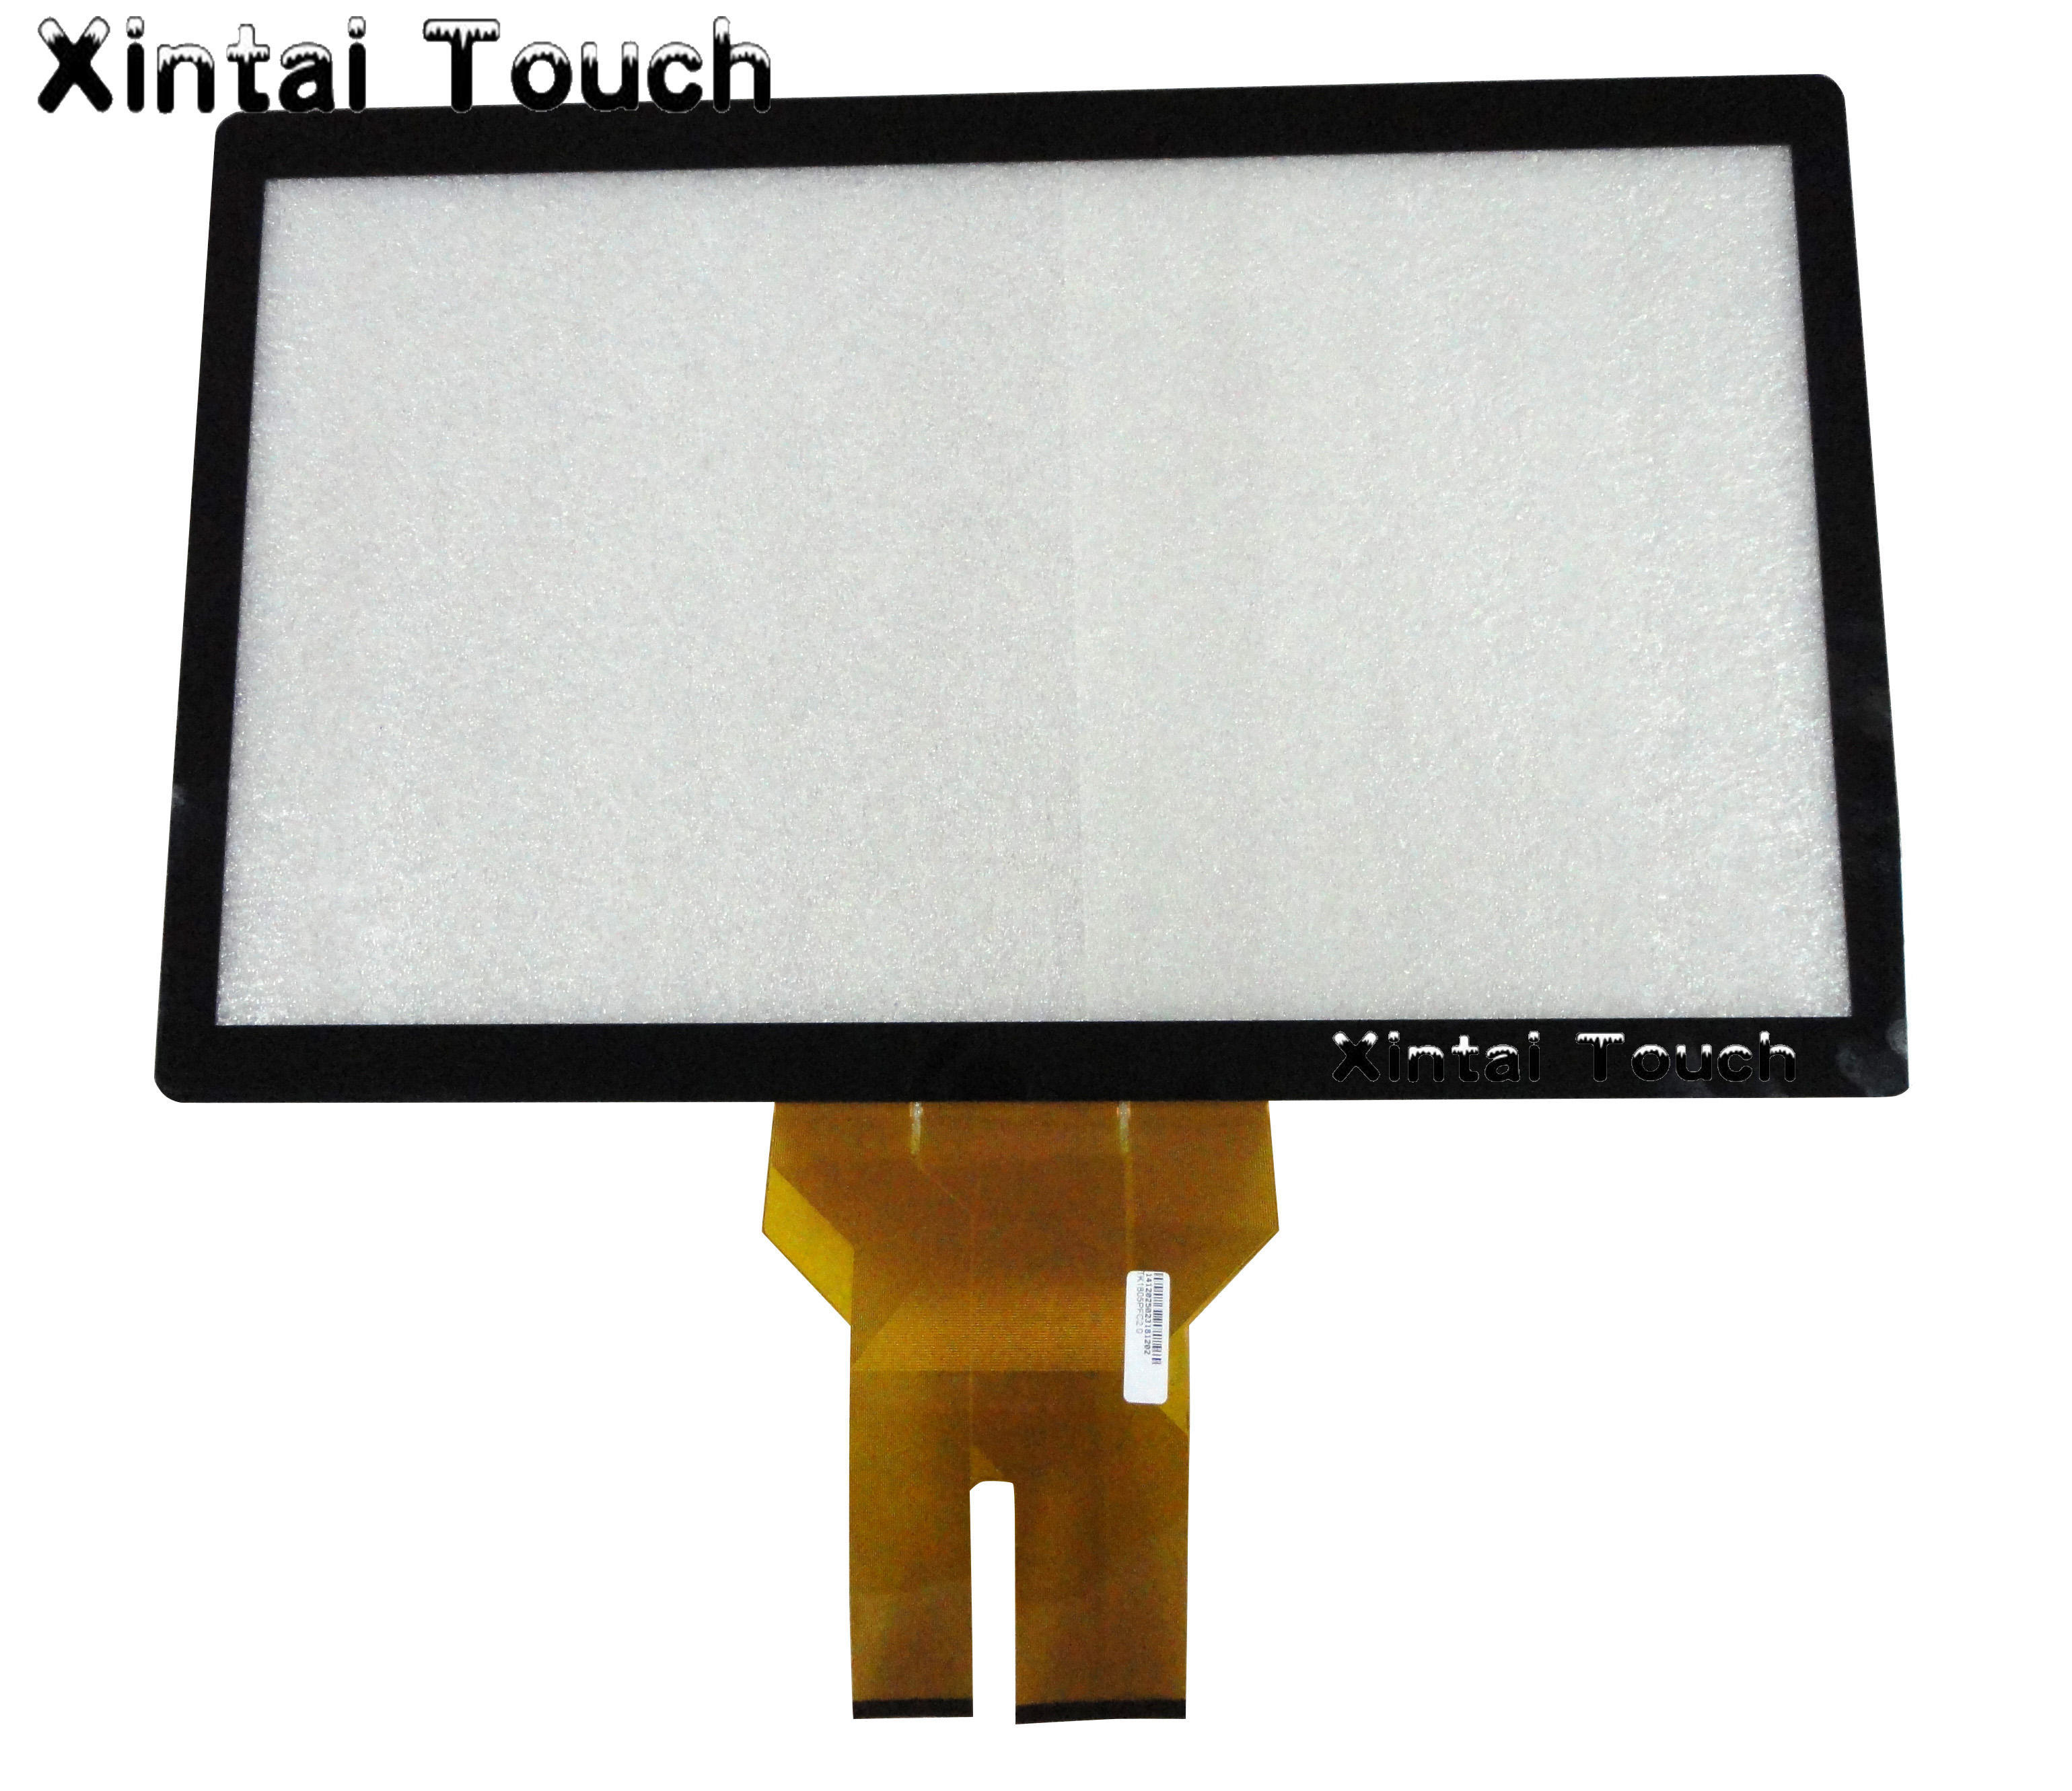 Low Price 19 inch Capacitive Touch Screen Panel Kit for Interactive Table, Interactive Wall, Multi Touch Screen, 4:3 fromat 19 inch usb capacitive multi touch screen foil 2 points interactive lcd touch screen foil film for shop window display